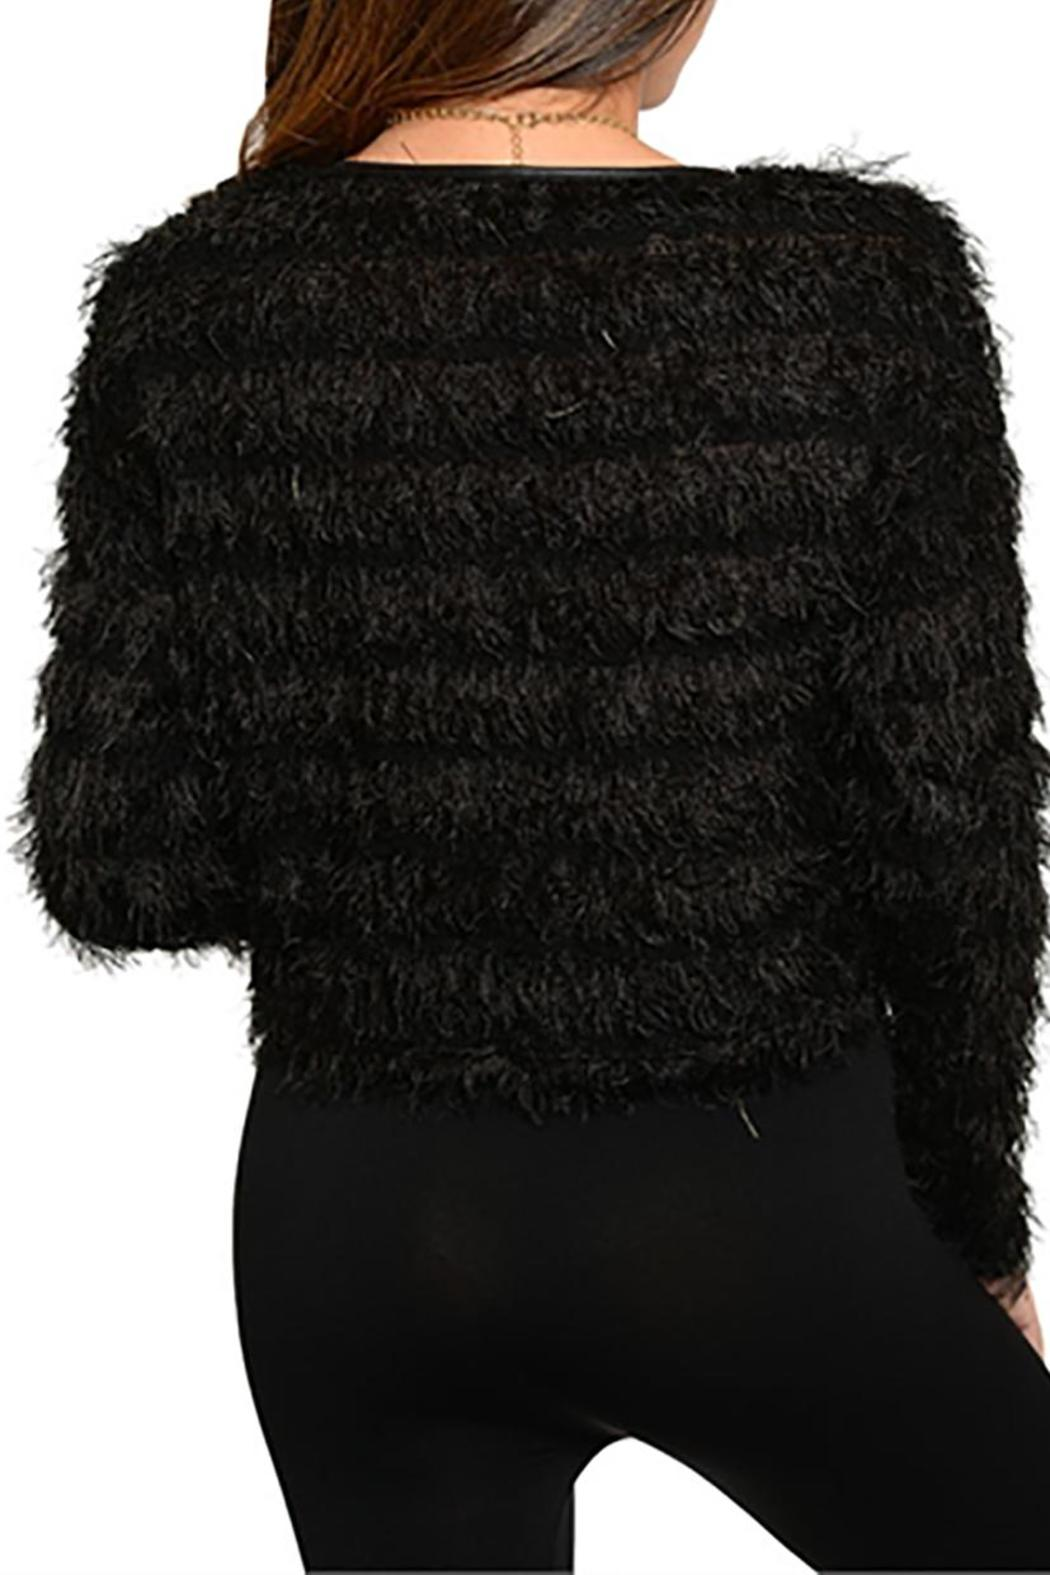 Ginger G Black Fuzzy Sweater from Idaho by The Paper Doll — Shoptiques